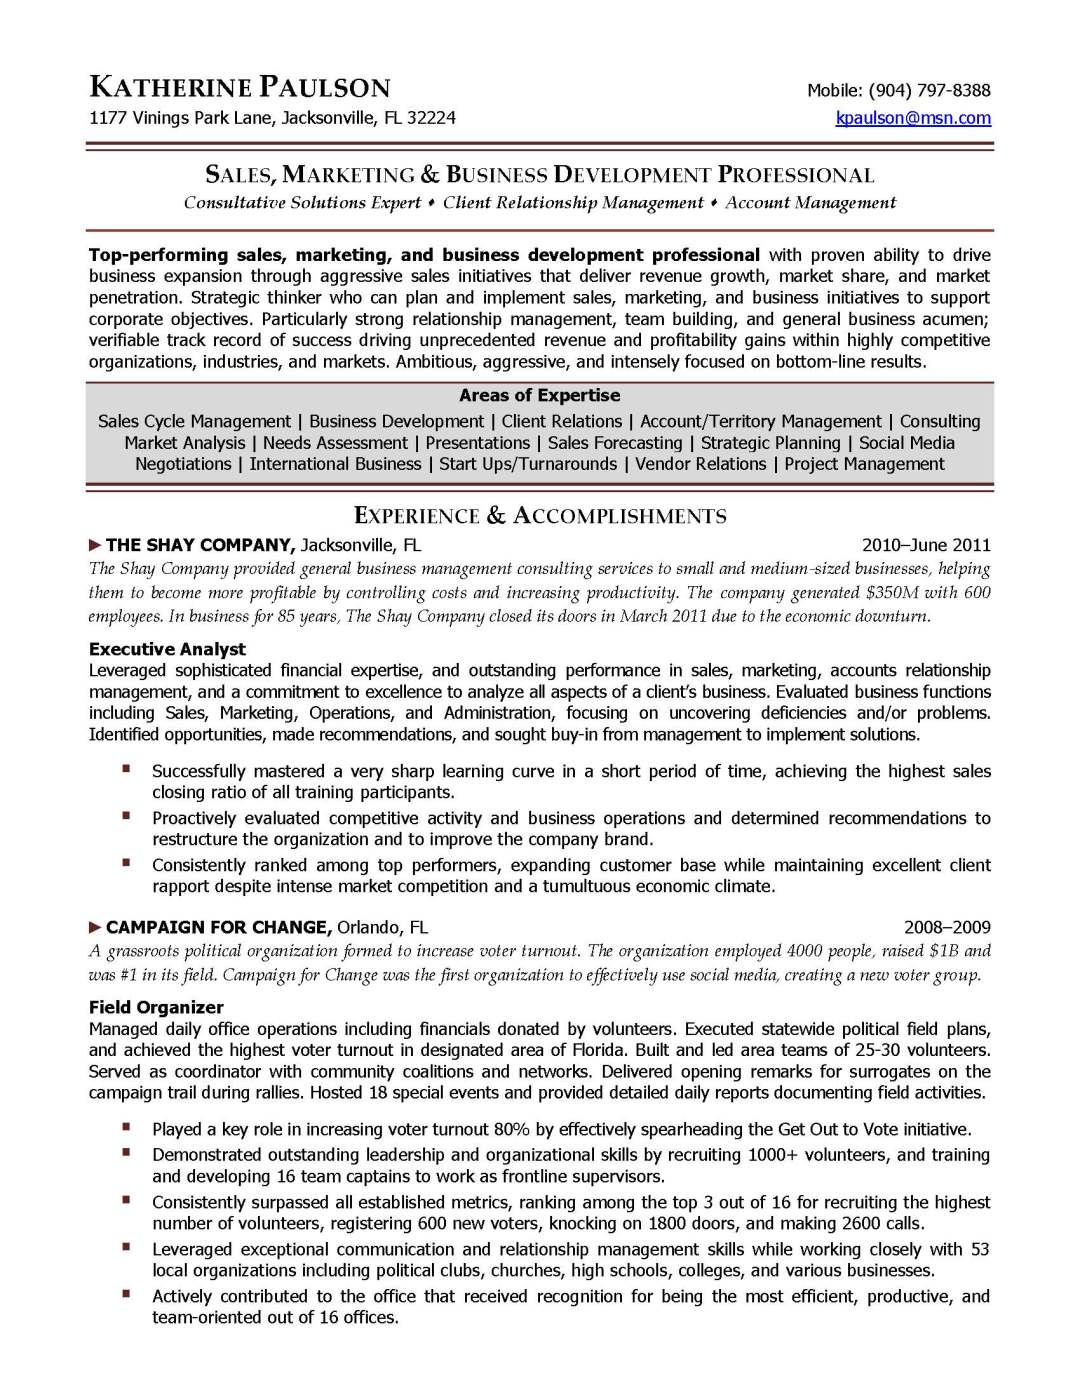 Top Resume Writing Services 2015 Resume Samples Elite Resume Writing